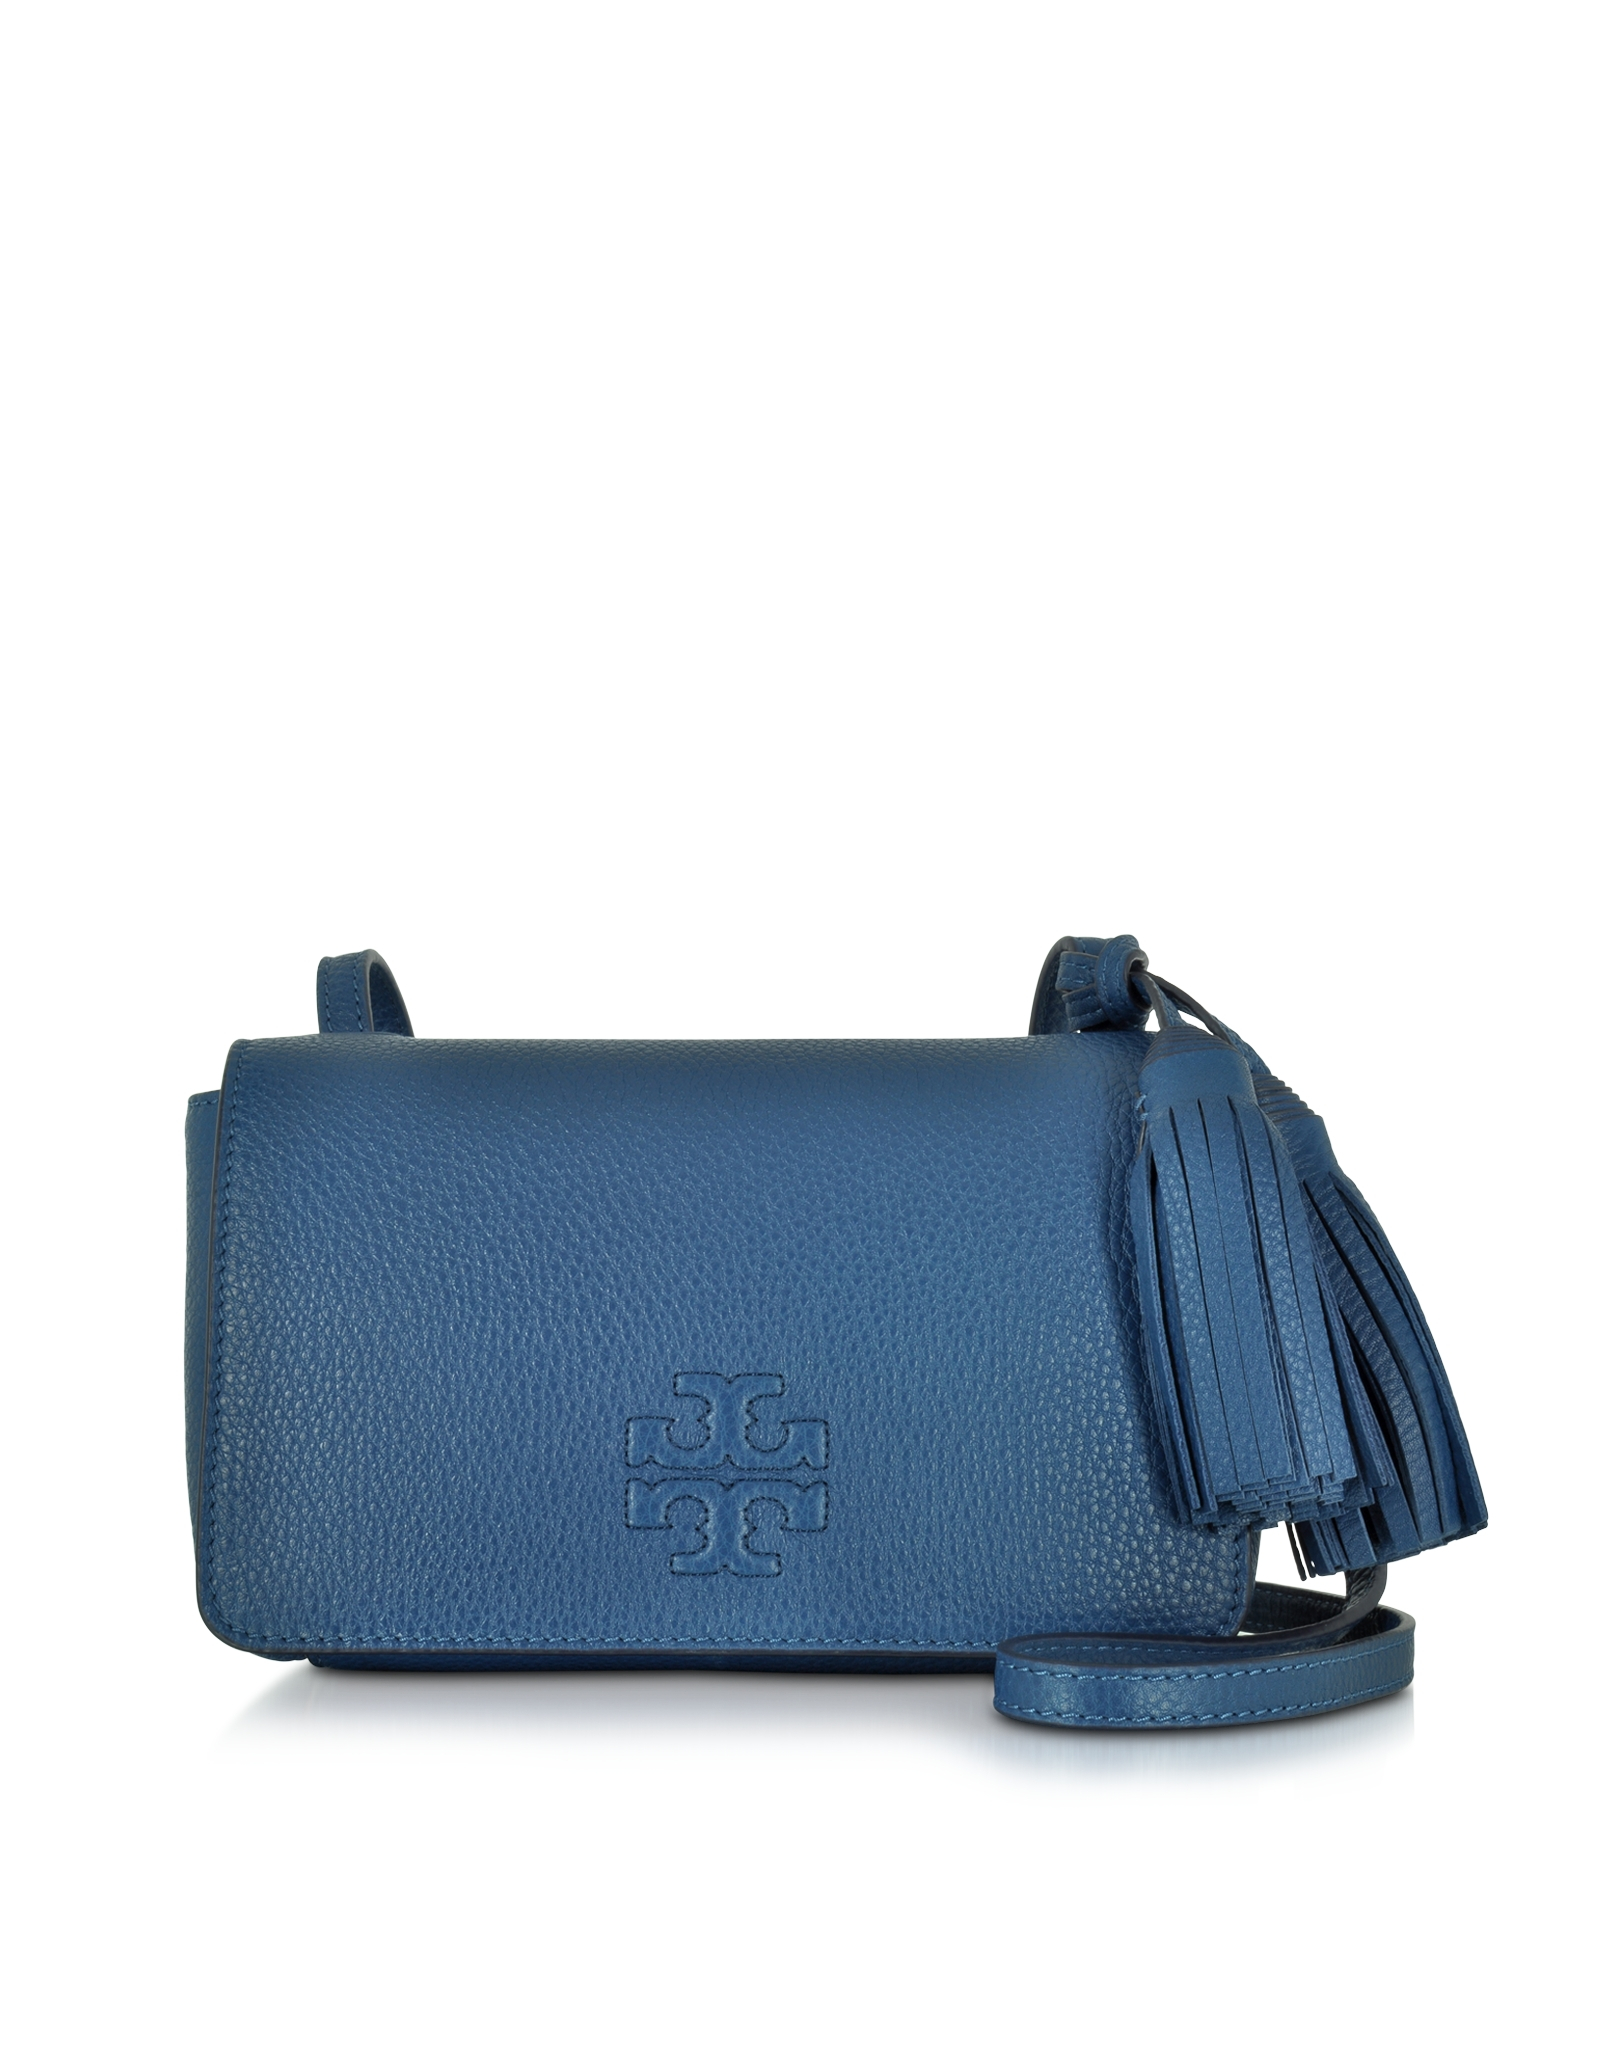 4f86f0c2eba35 Lyst - Tory Burch Thea Mini Tidal Wave Pebbled Leather Crossbody Bag ...